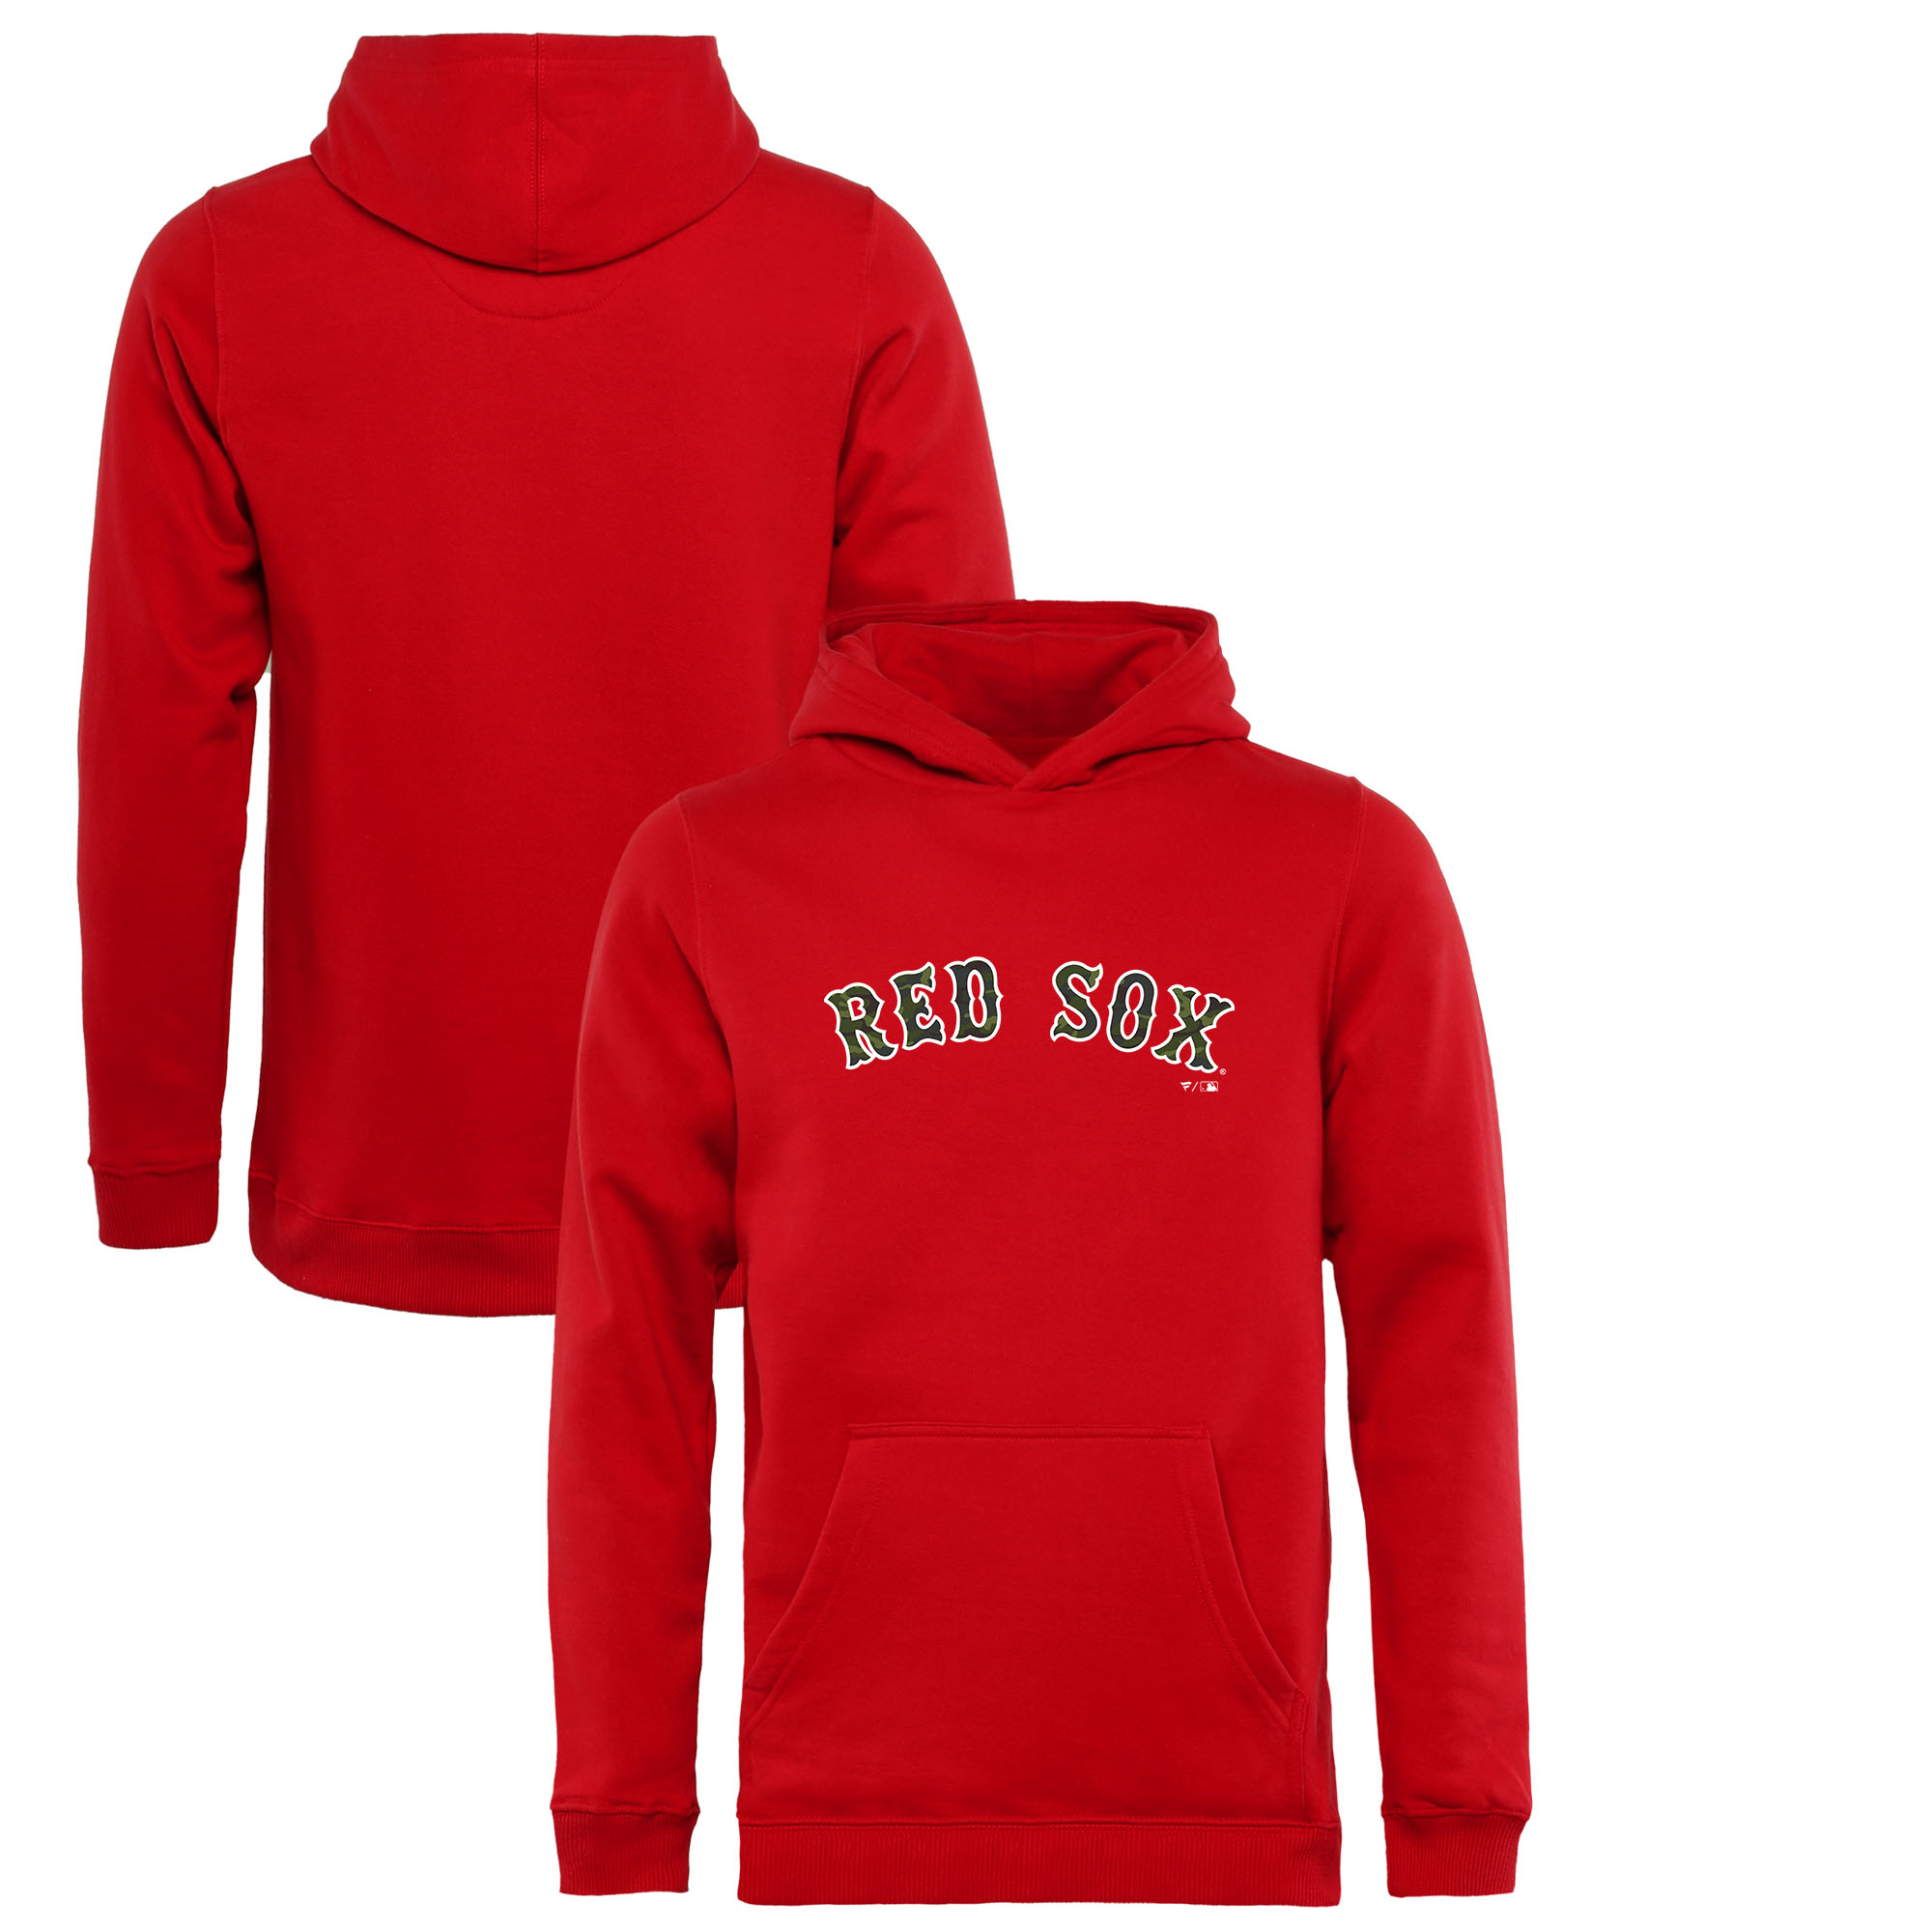 timeless design 60363 3448d Boston Red Sox Fanatics Branded Youth Armed Forces Wordmark Pullover Hoodie  - Red